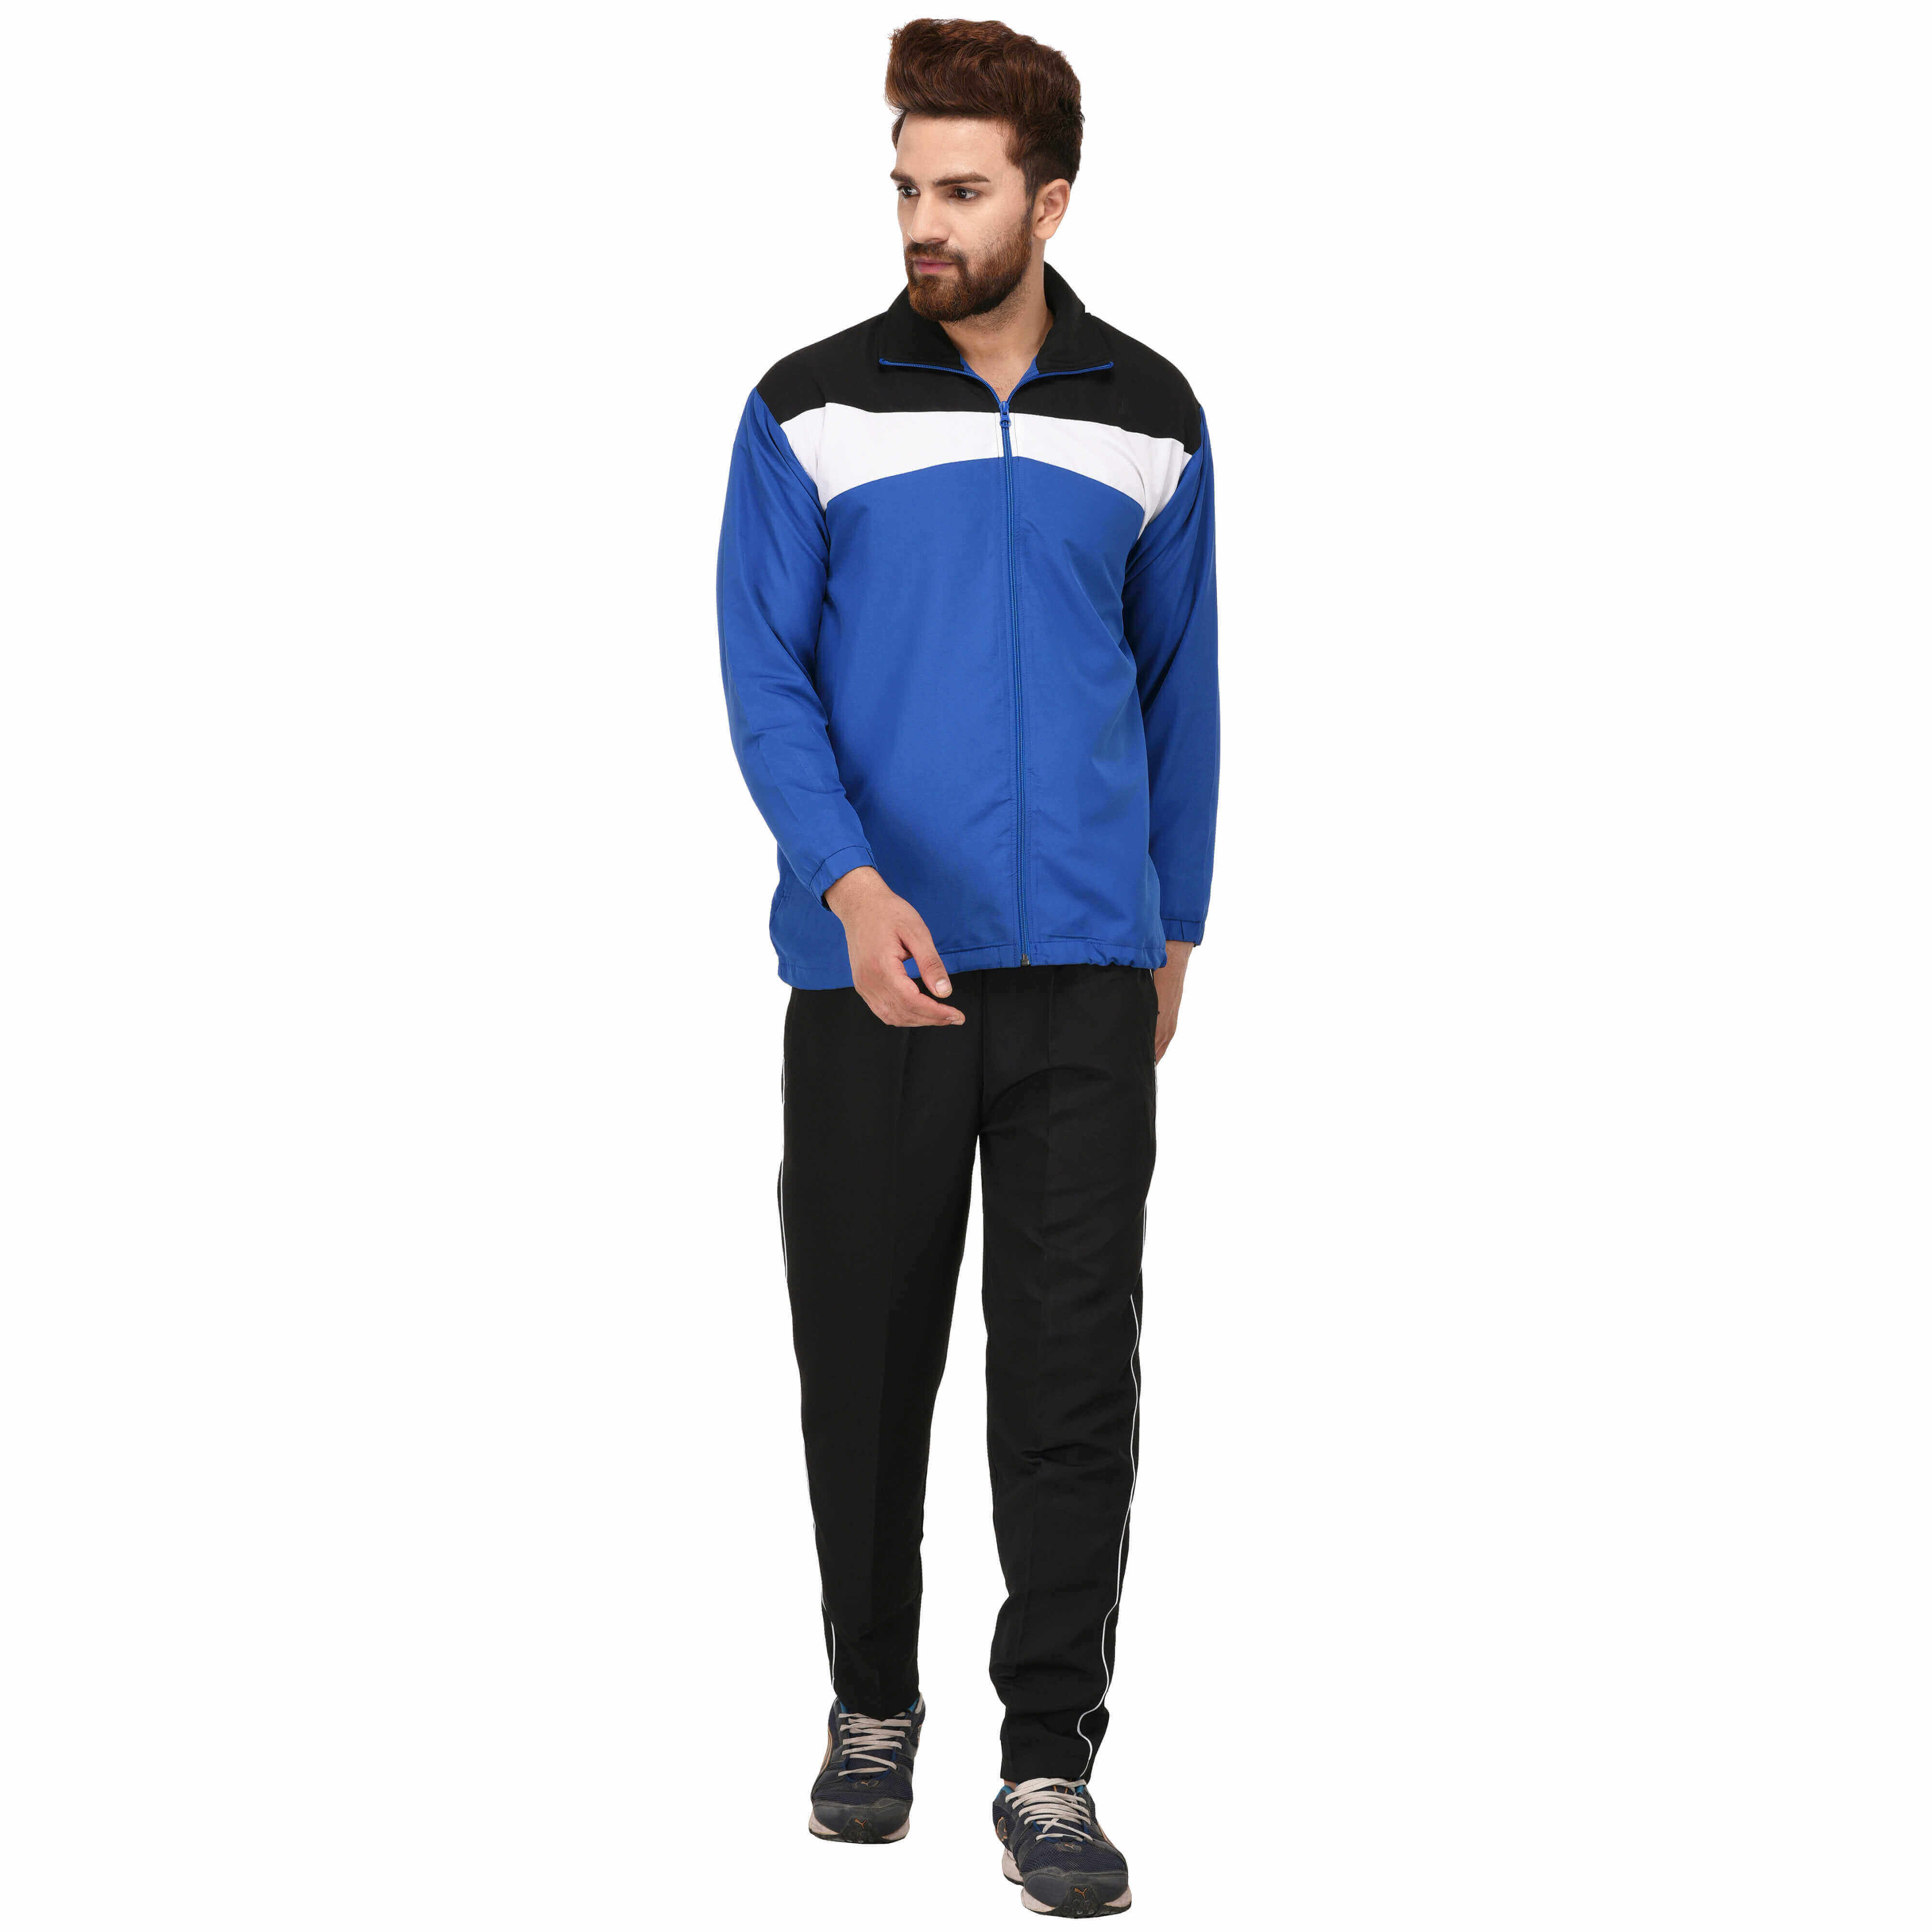 Mens Tracksuits Manufacturers in Noida